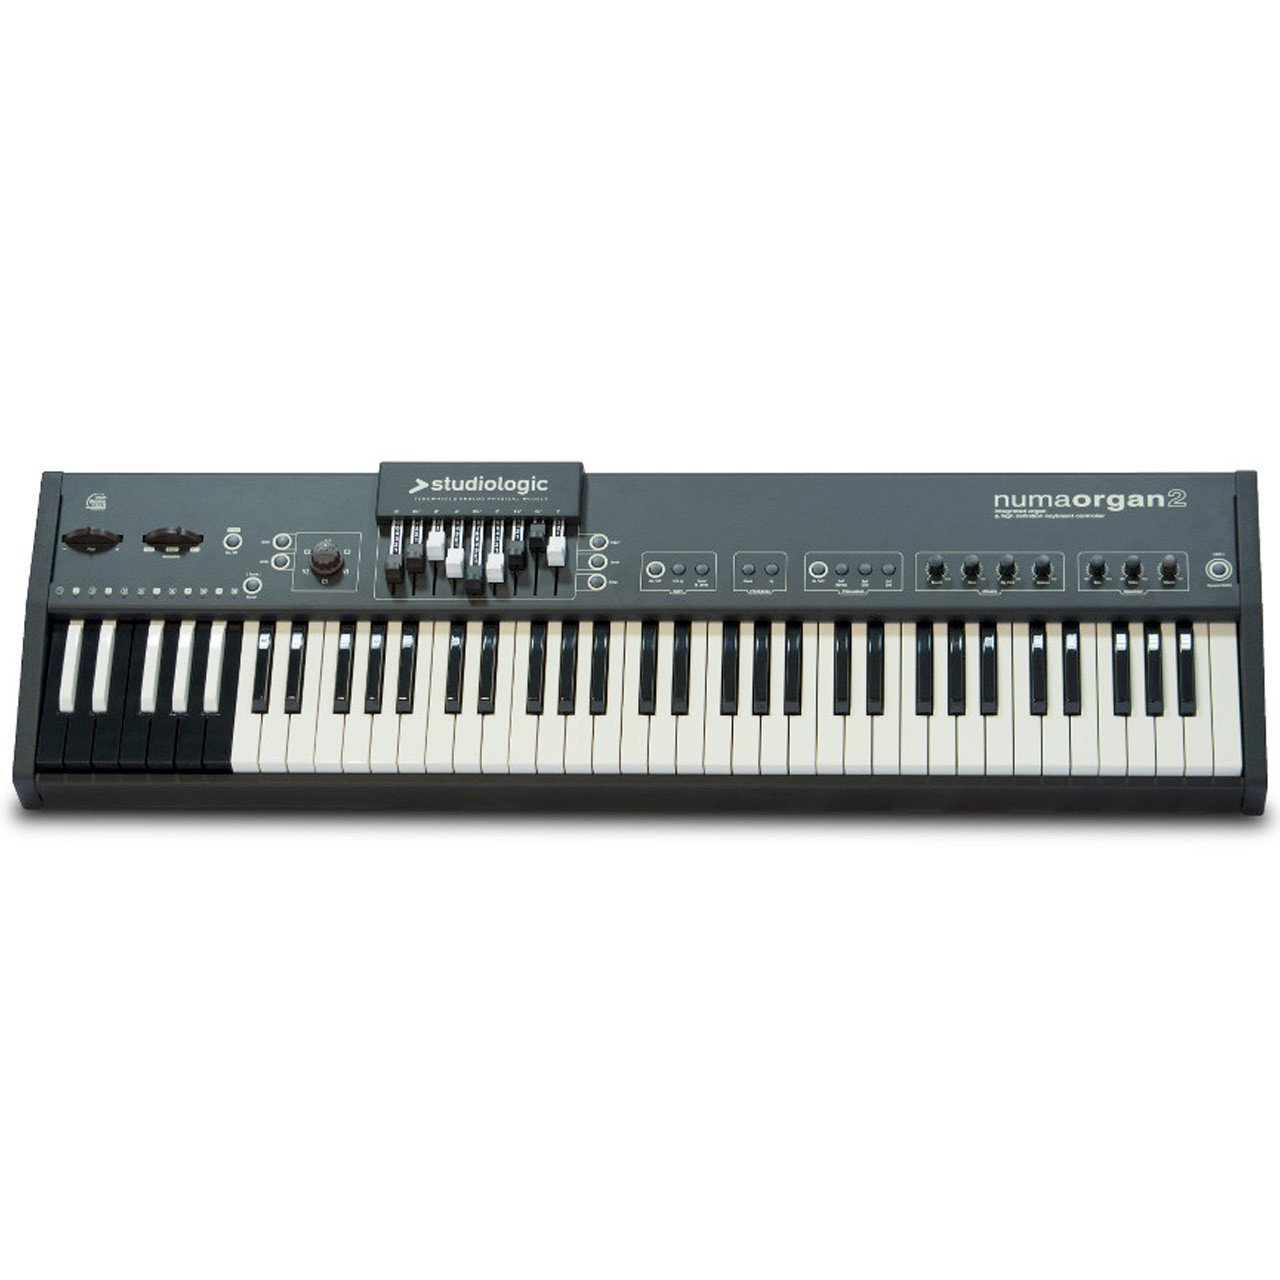 Keyboard Synthesizers - Studiologic Numa Organ 2 Physical Model Tone Wheel Organ Keyboard